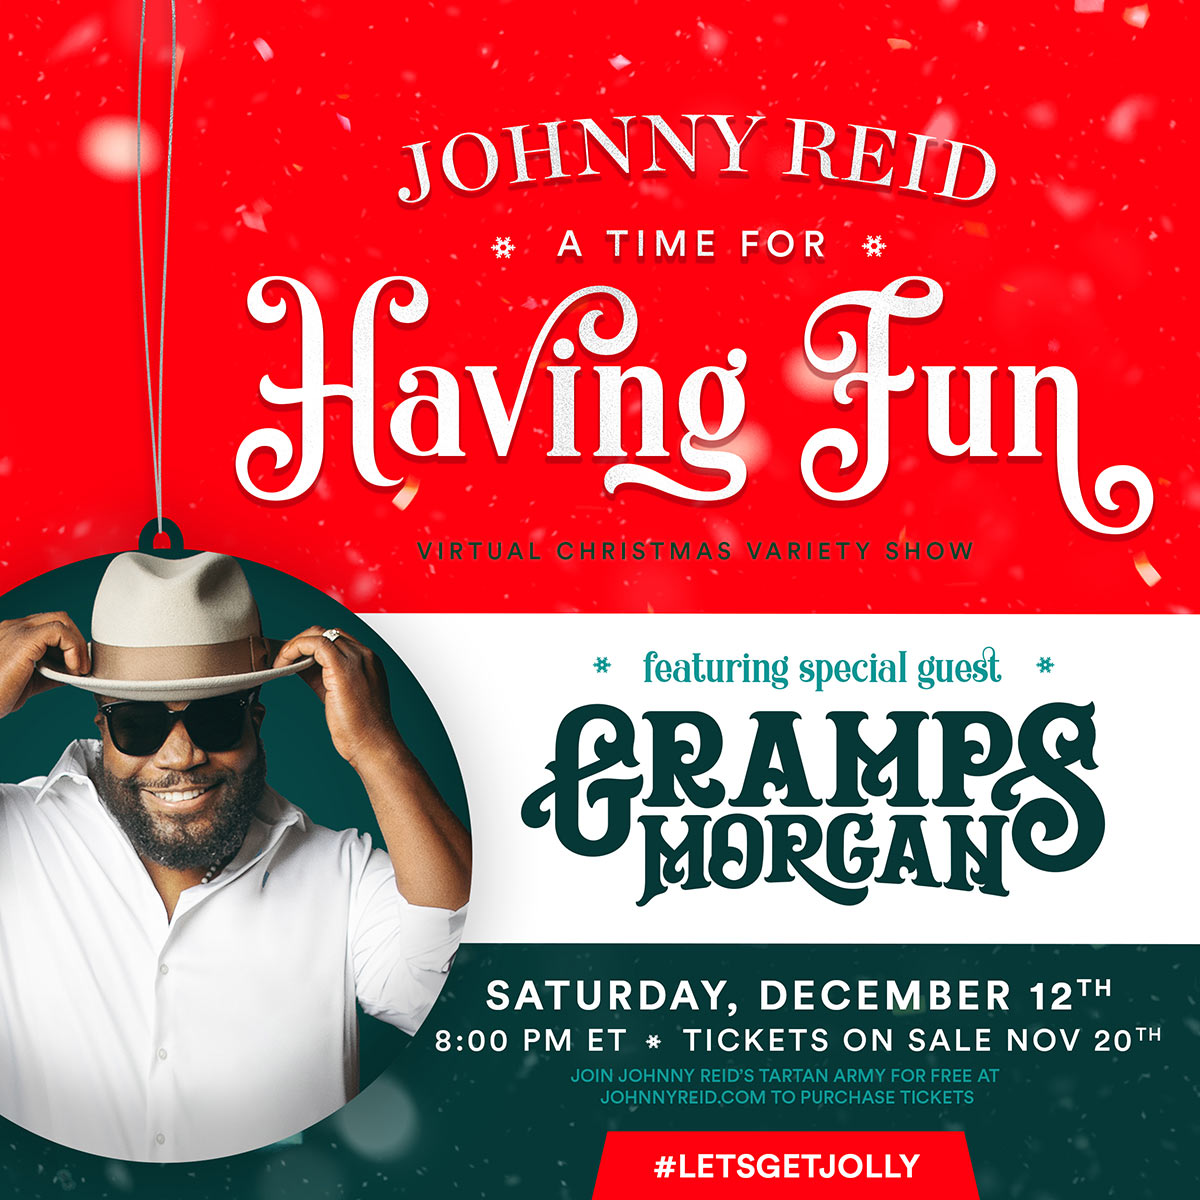 Grammy Award Winner Gramps Morgan Announced as Special Guest on A Time For Having Fun Virtual Christmas Variety Show